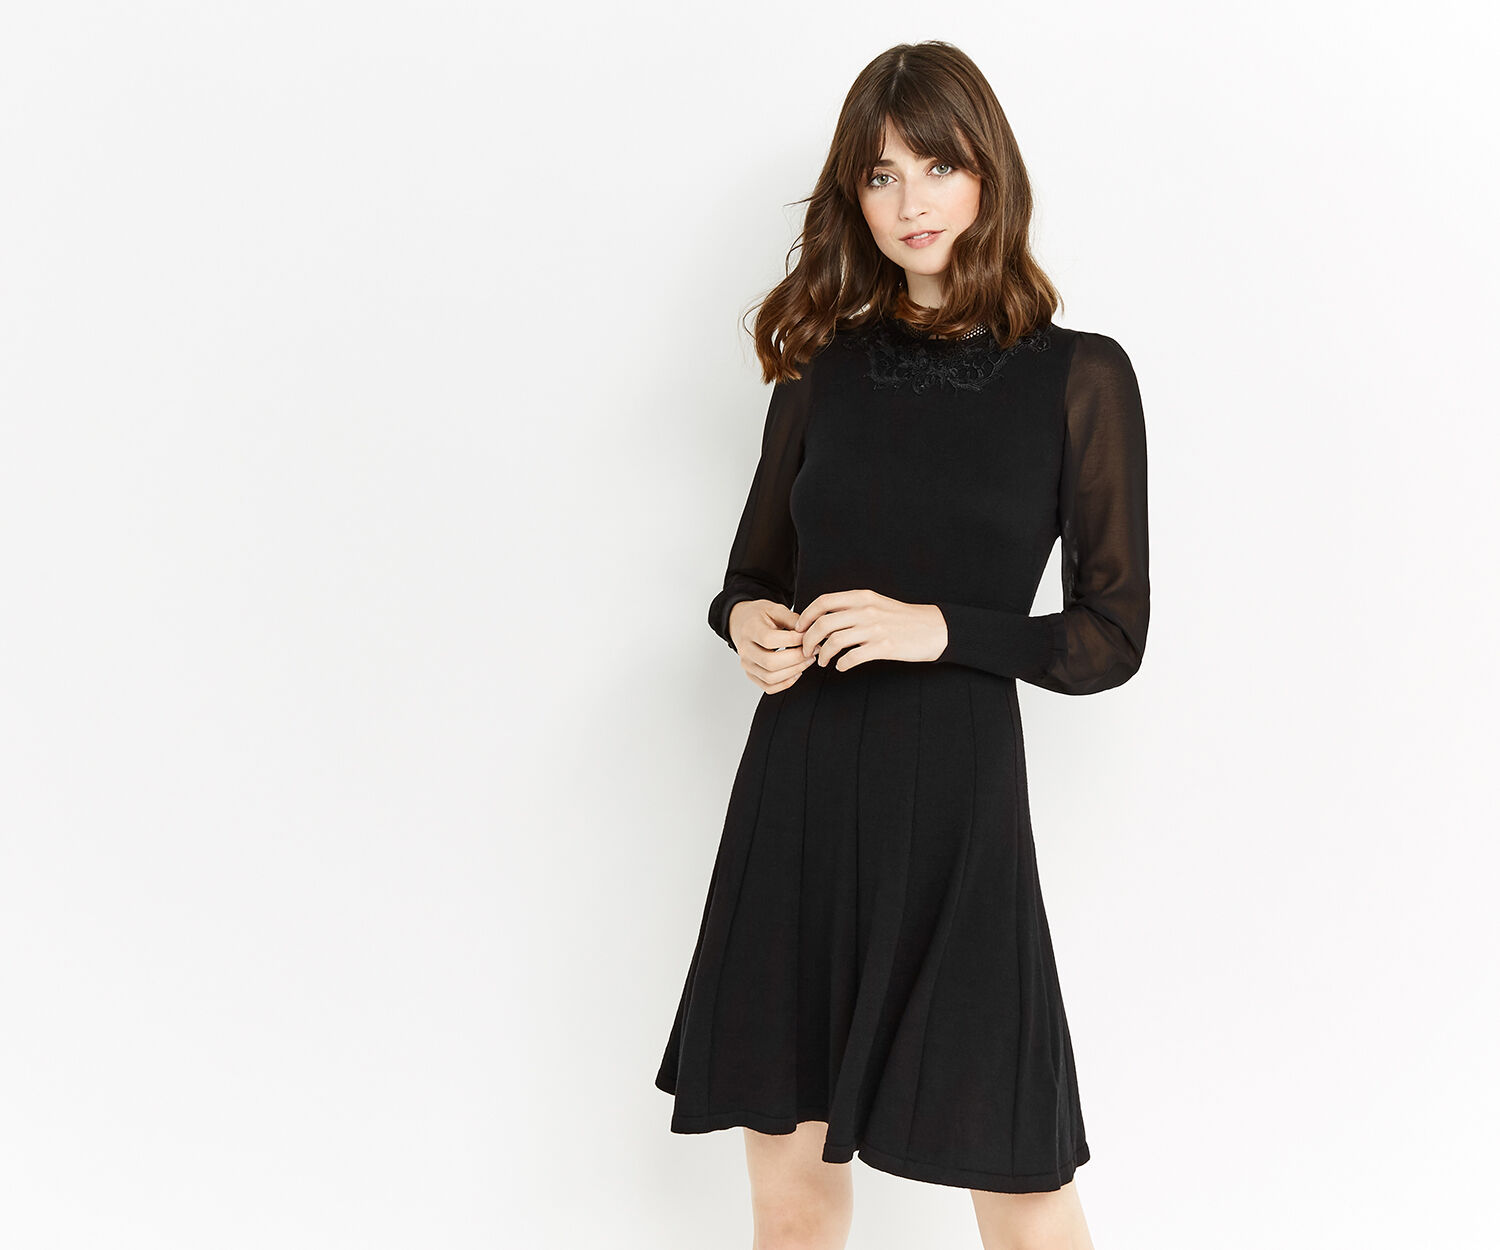 Oasis, LACE AND SHEER KNIT DRESS Black 1